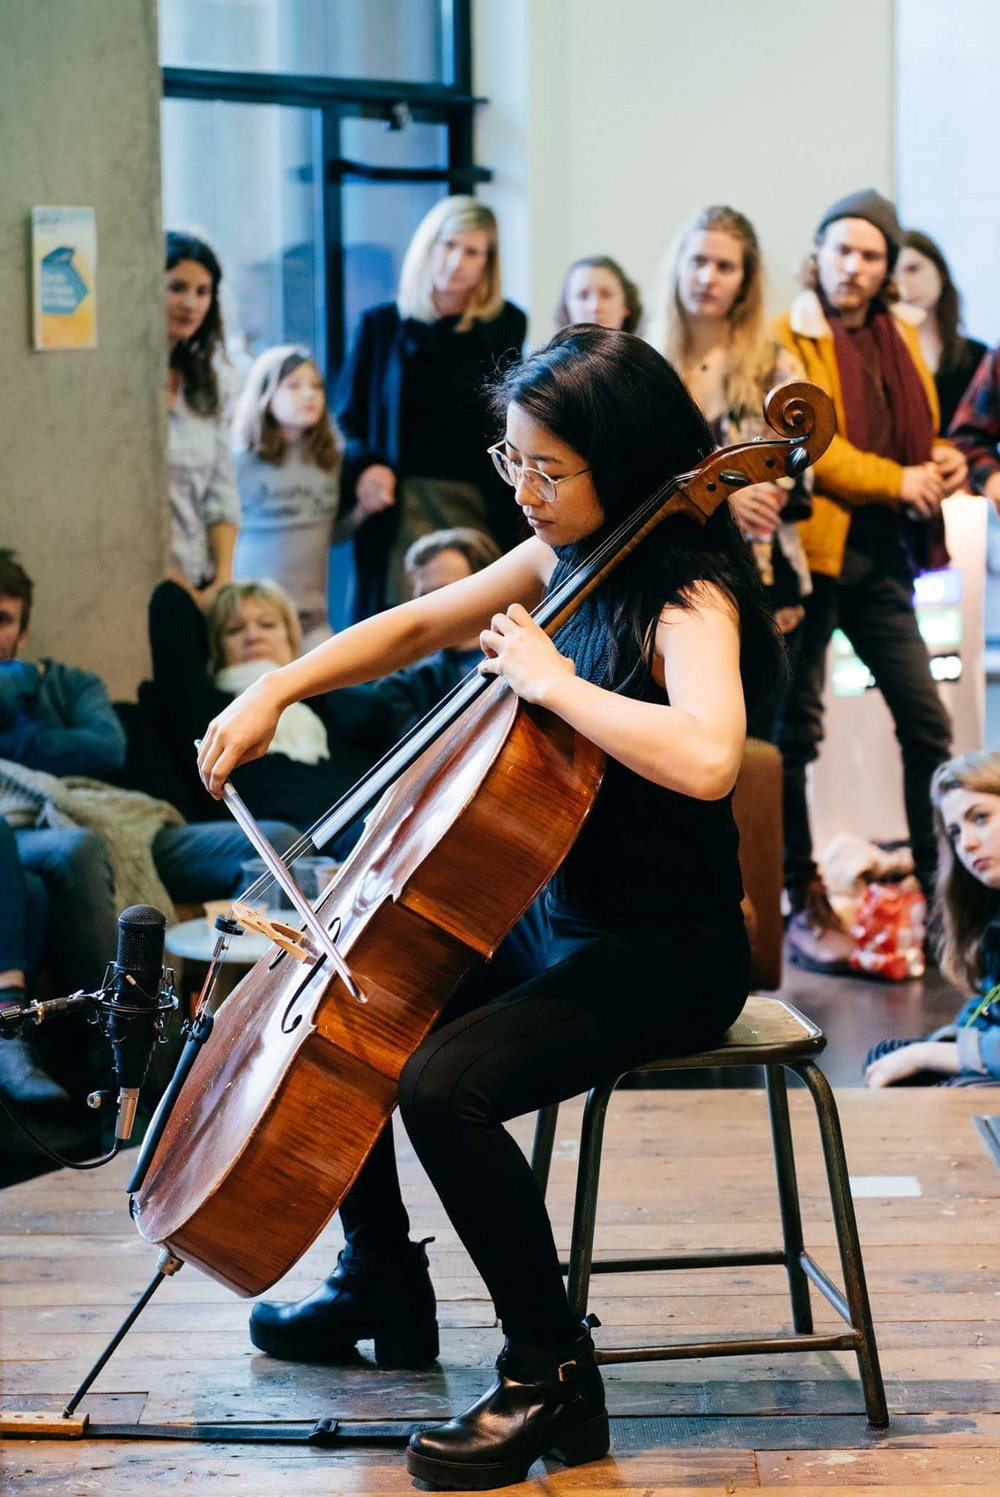 Sofar-Sounds-Amsterdam-cellist-The-Wong-Janice-photo-by-Atsushi-Yukutake.jpg